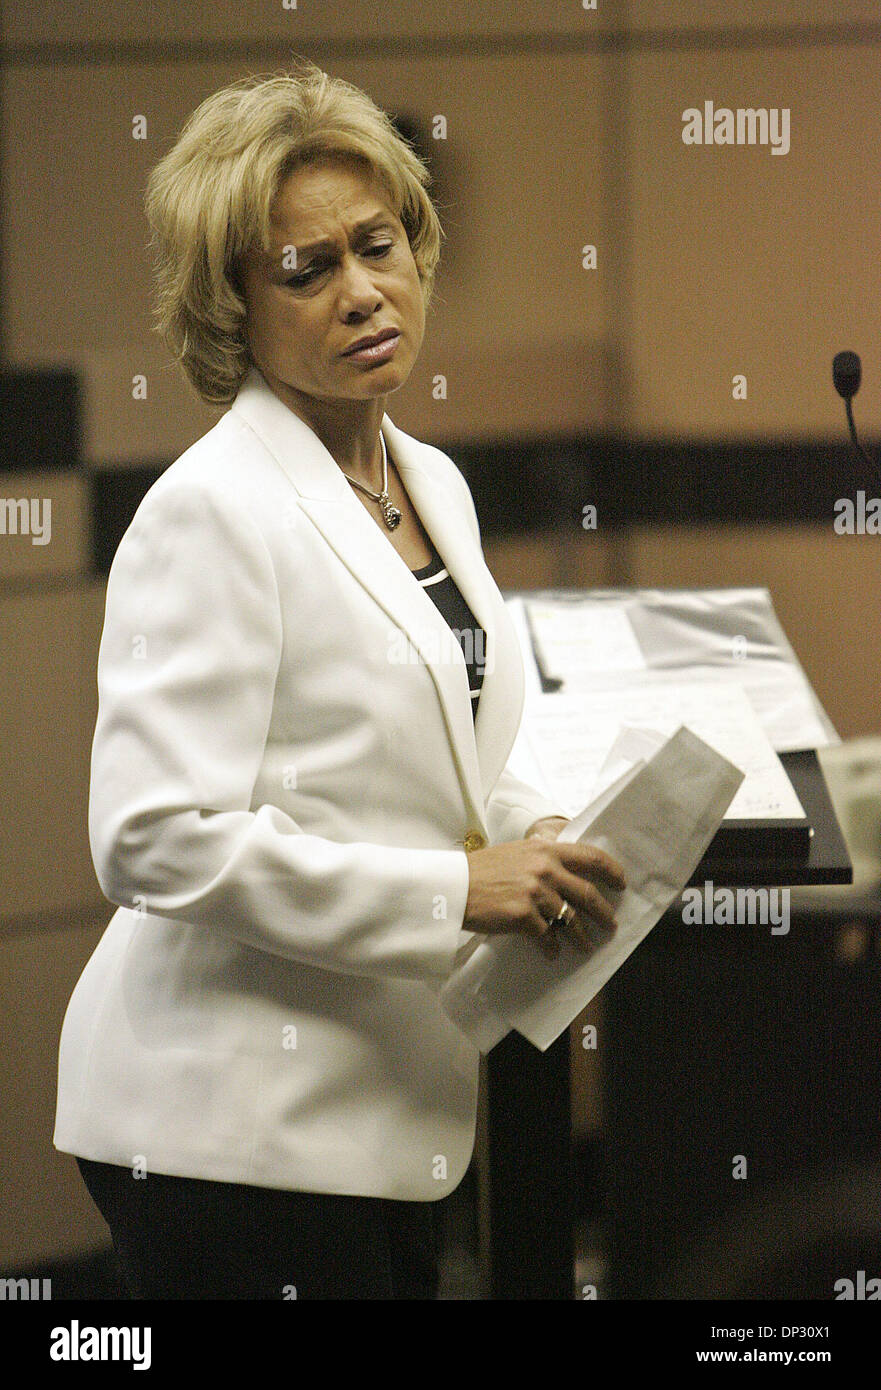 Jun 14, 2006; West Palm Beach, FL, USA; Jamie Lee Daniel pled guilty to killing his former wife Renay and their son Sabree and was sentenced to 50 years in prison with no chance of early release today at the Palm Beach County Courthouse in West Palm Beach. Family members of murder victims were present in Judge Krista Marx's courtroom. One of Renay's surviving sisters, Stepanie spok - Stock Image